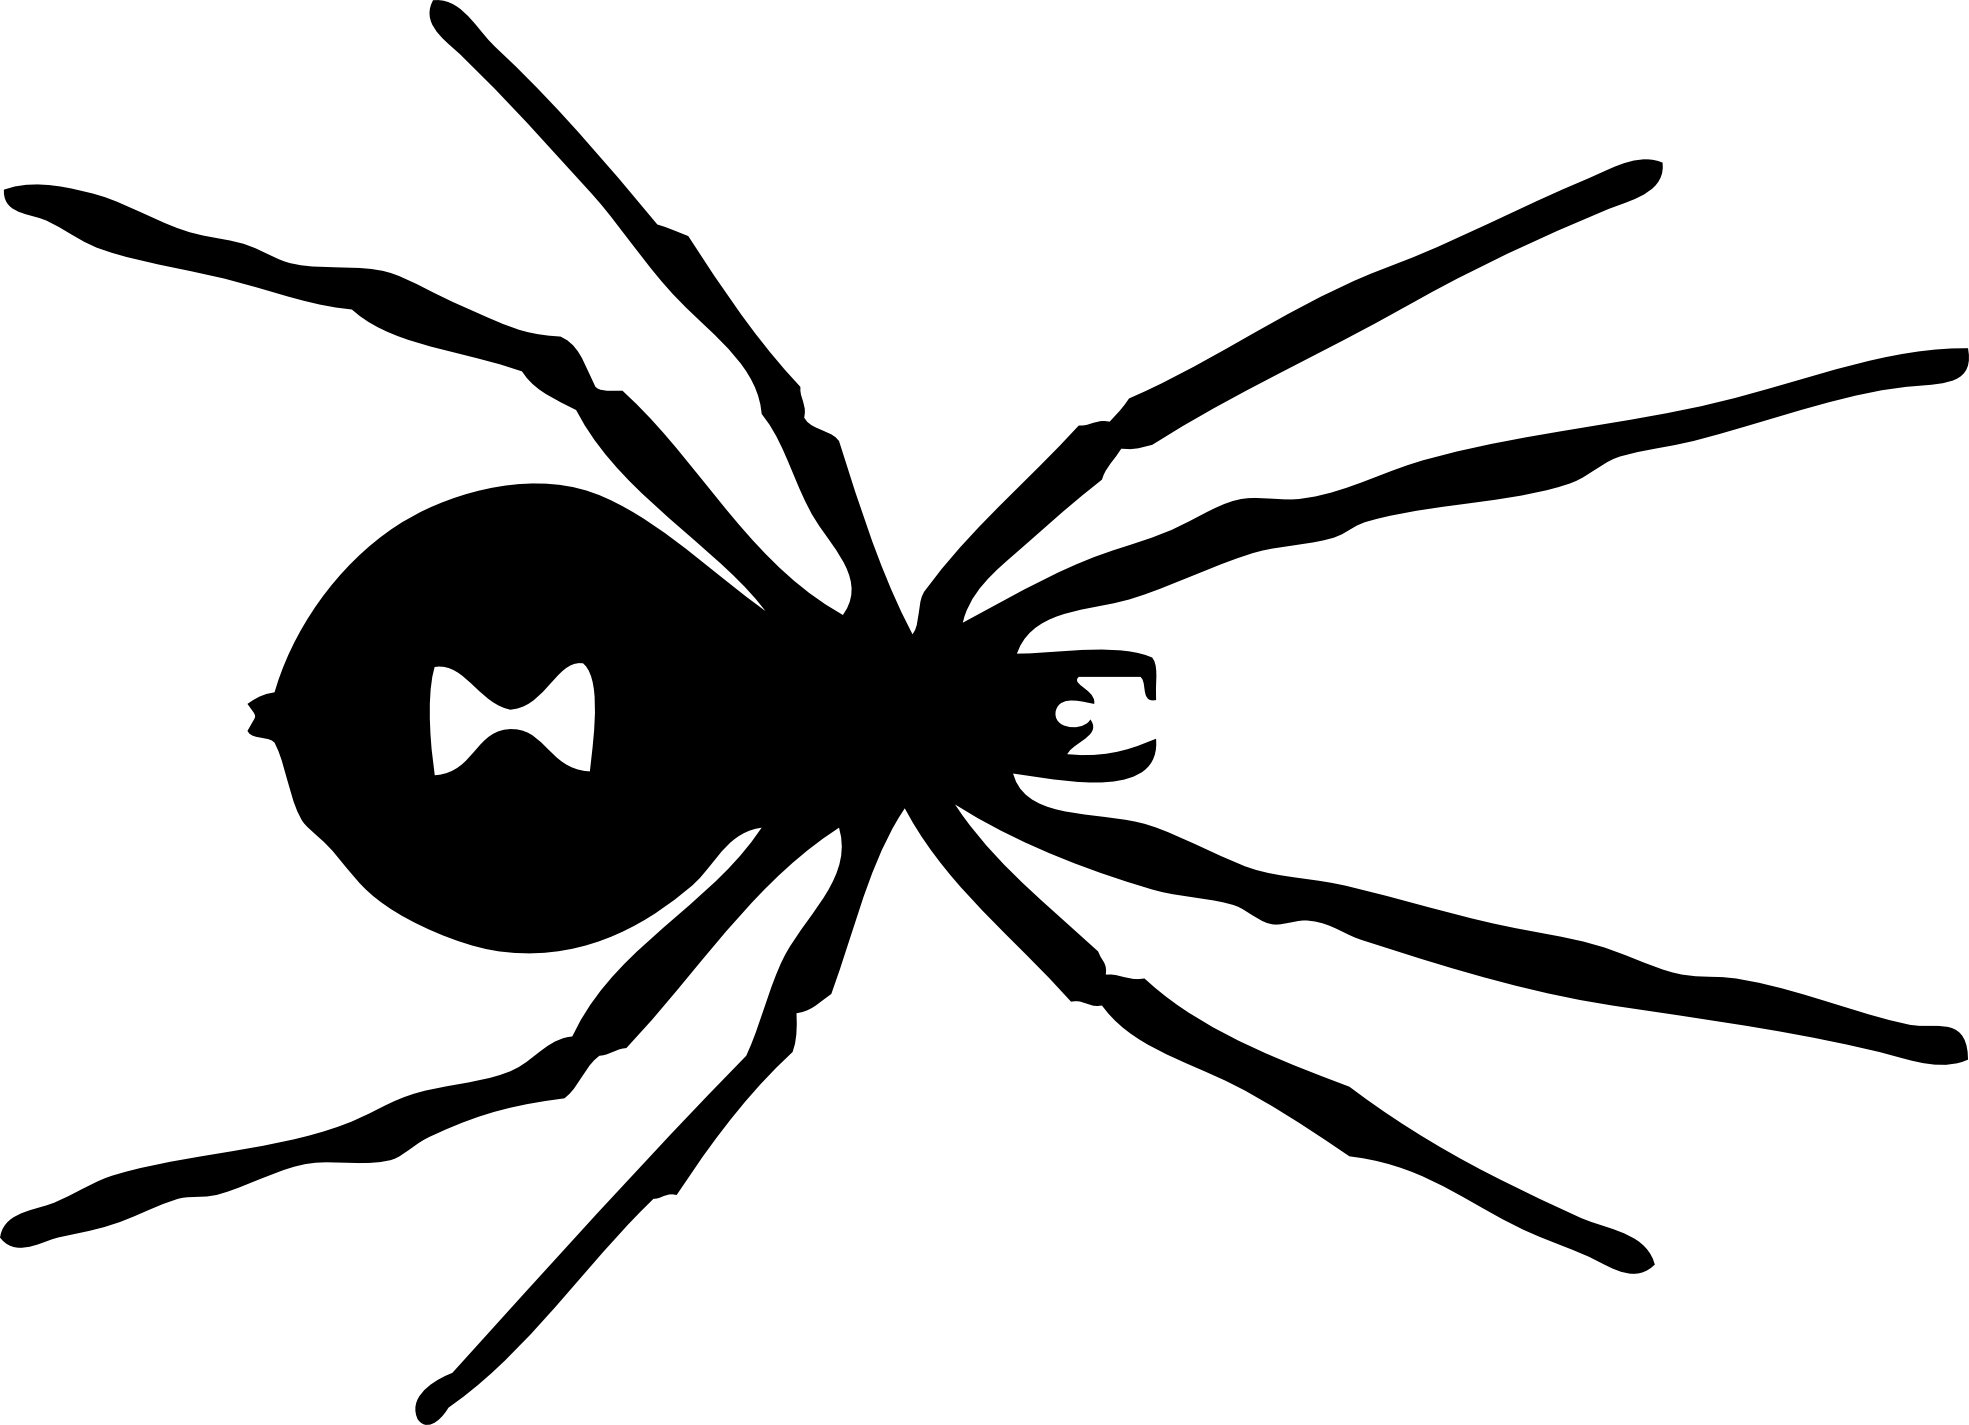 Brown recluse spider clipart black and white clip art royalty free black widow logo marvel | Got Geek? | Black widow spider, Spider ... clip art royalty free